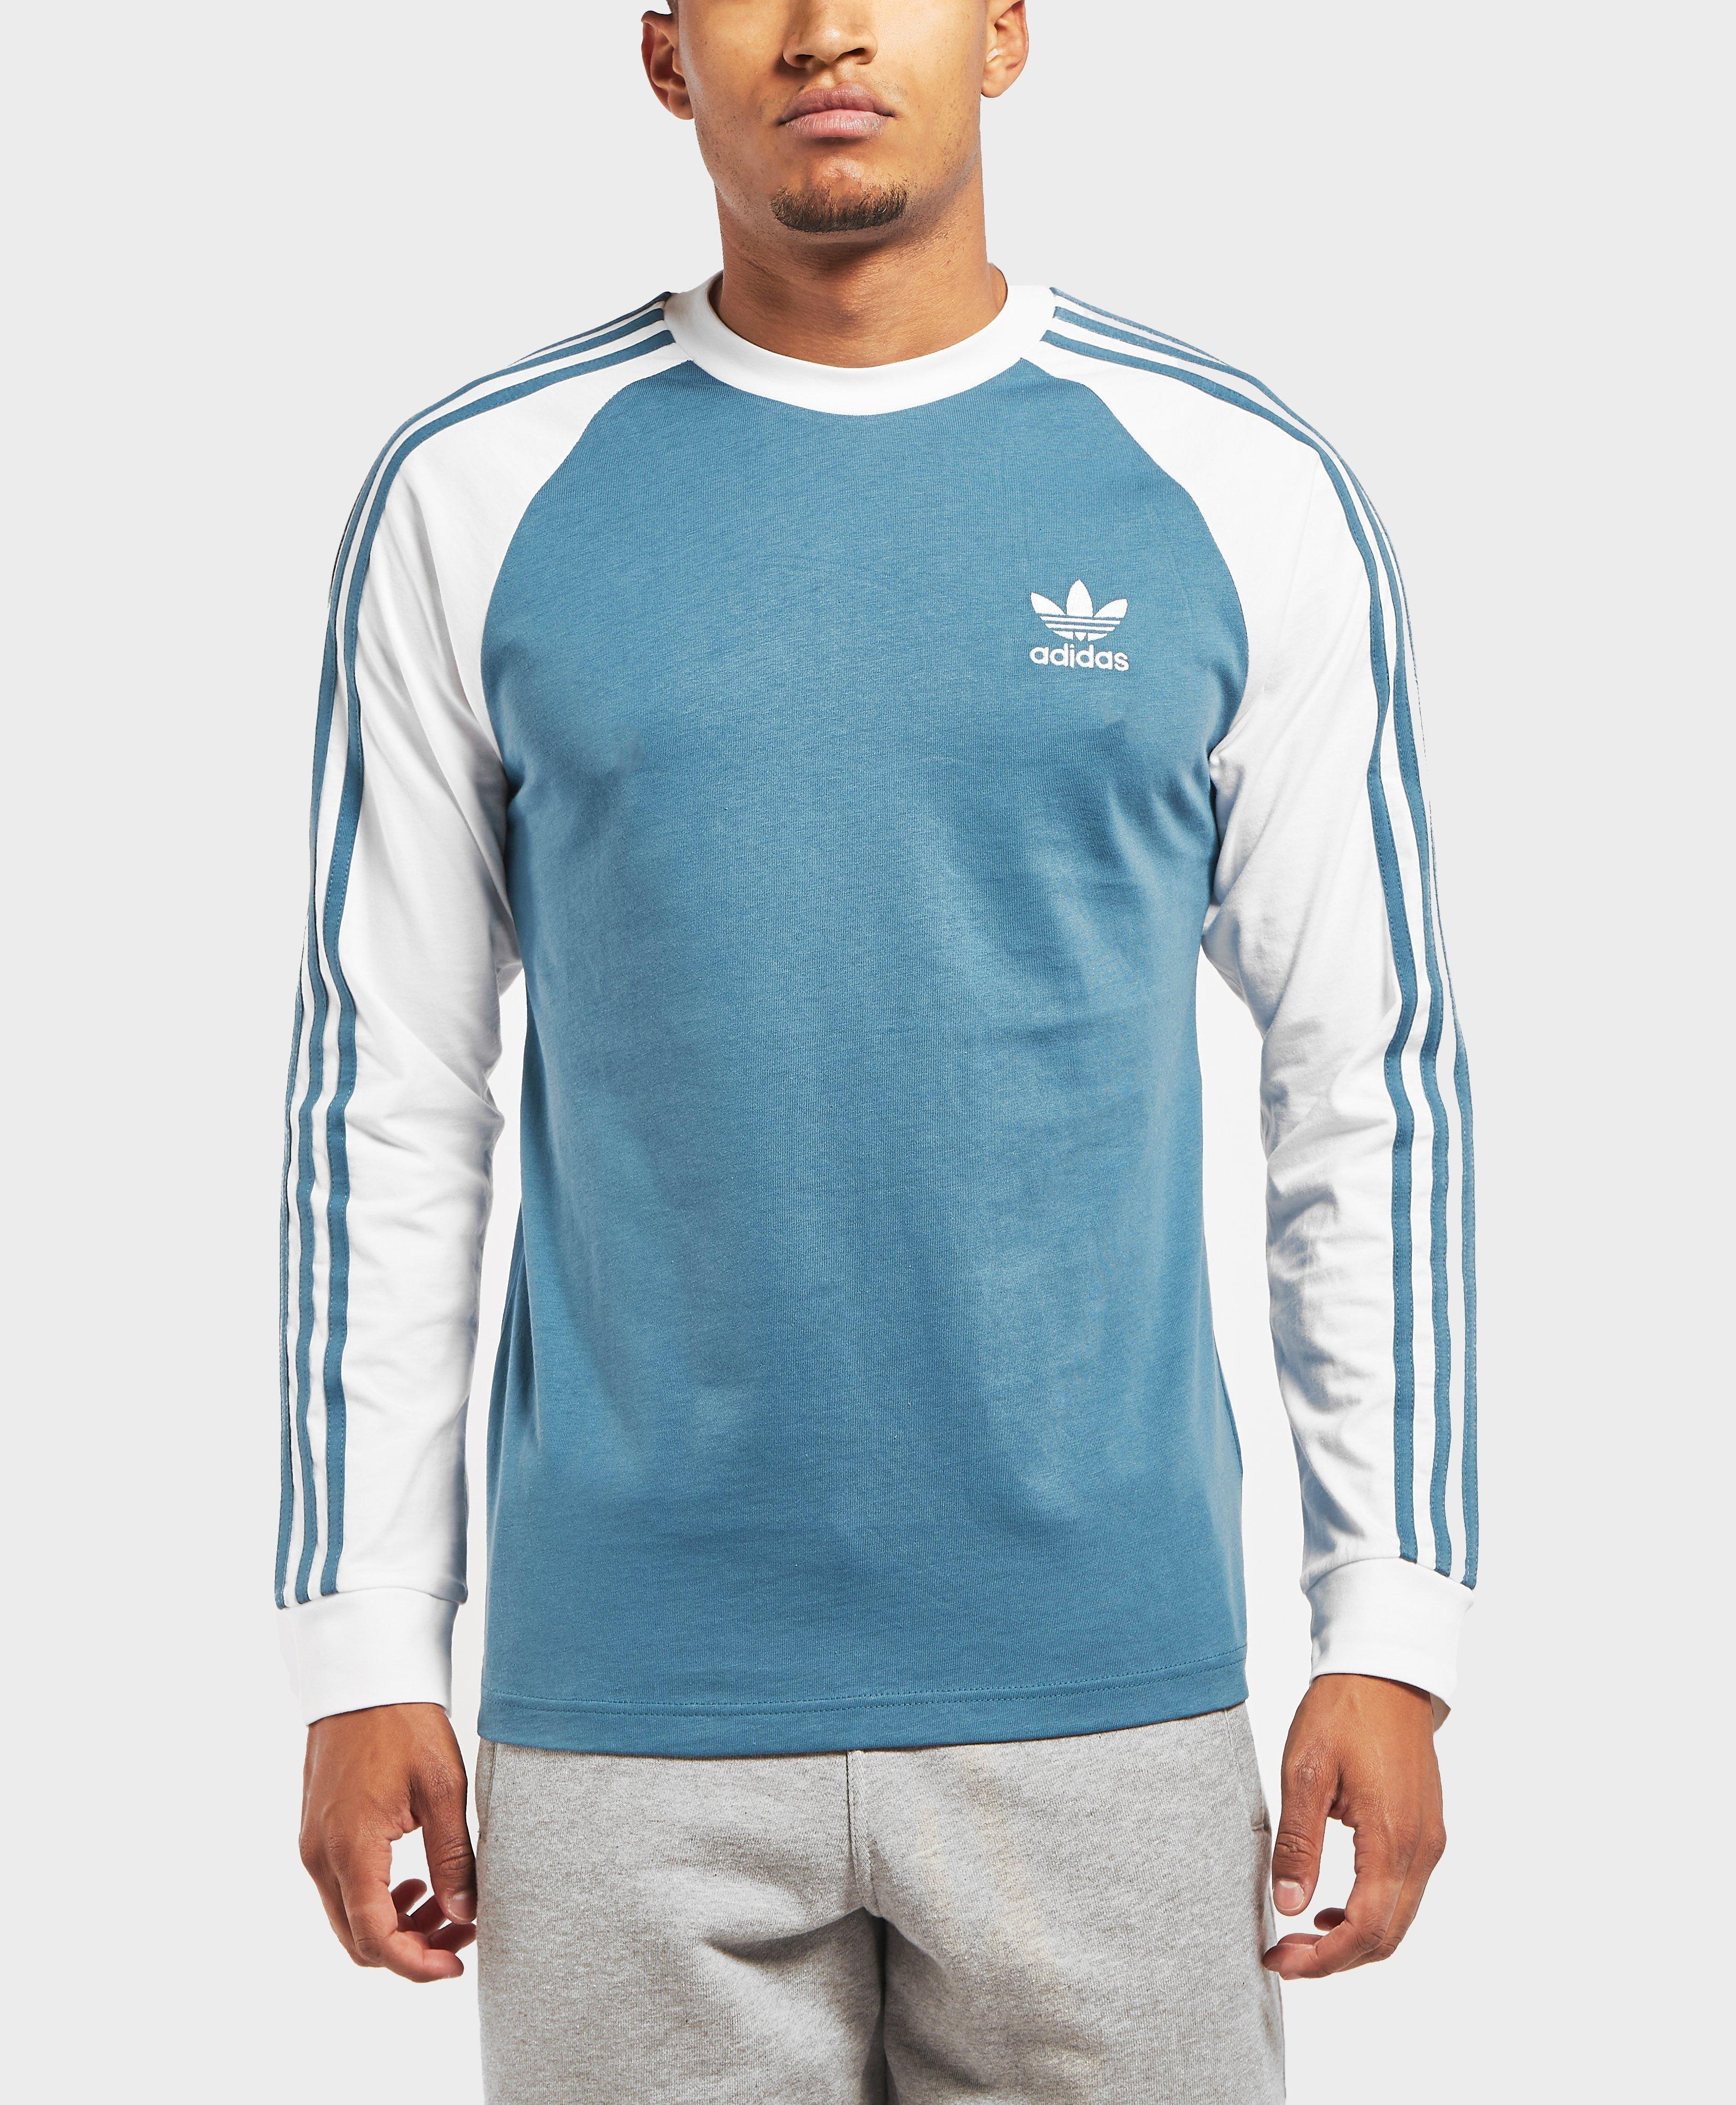 adidas Originals Cotton 3-stripes Long Sleeve T-shirt in Blue for ...